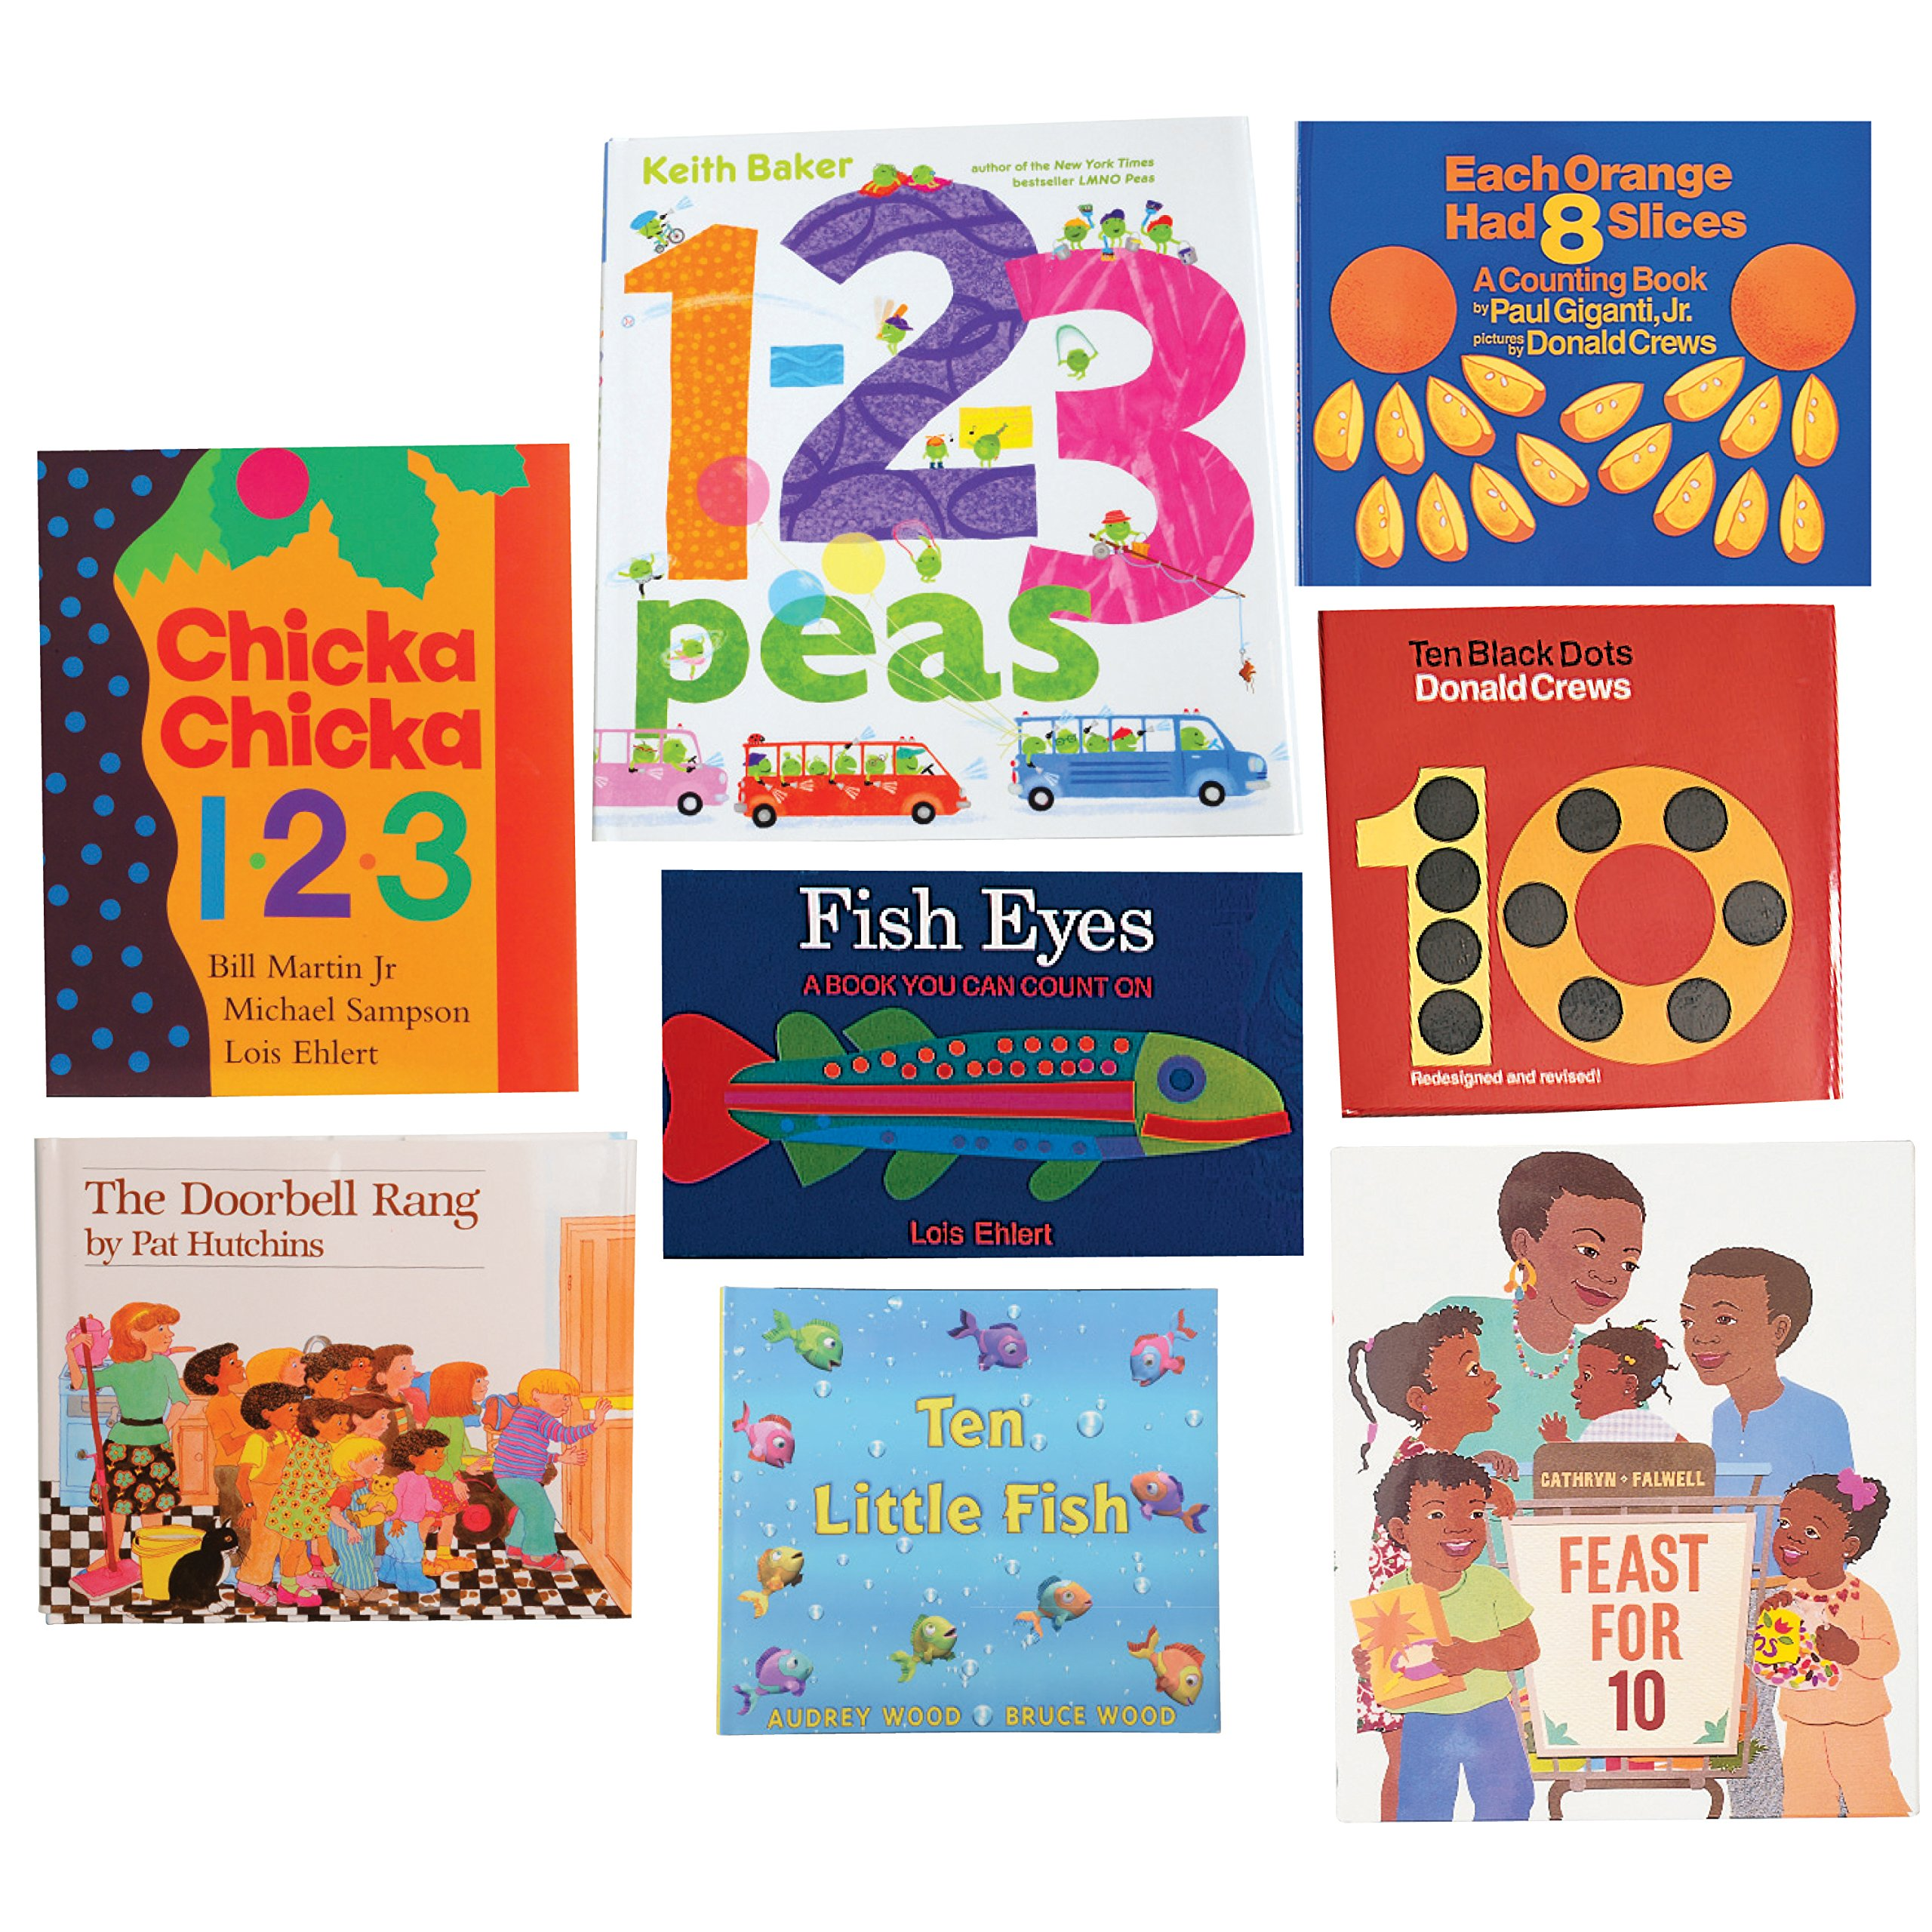 Constructive Playthings BOK-101 Storybooks with Math Concepts Hardcover Books, Grade: Kindergarten to 3, Set of 8